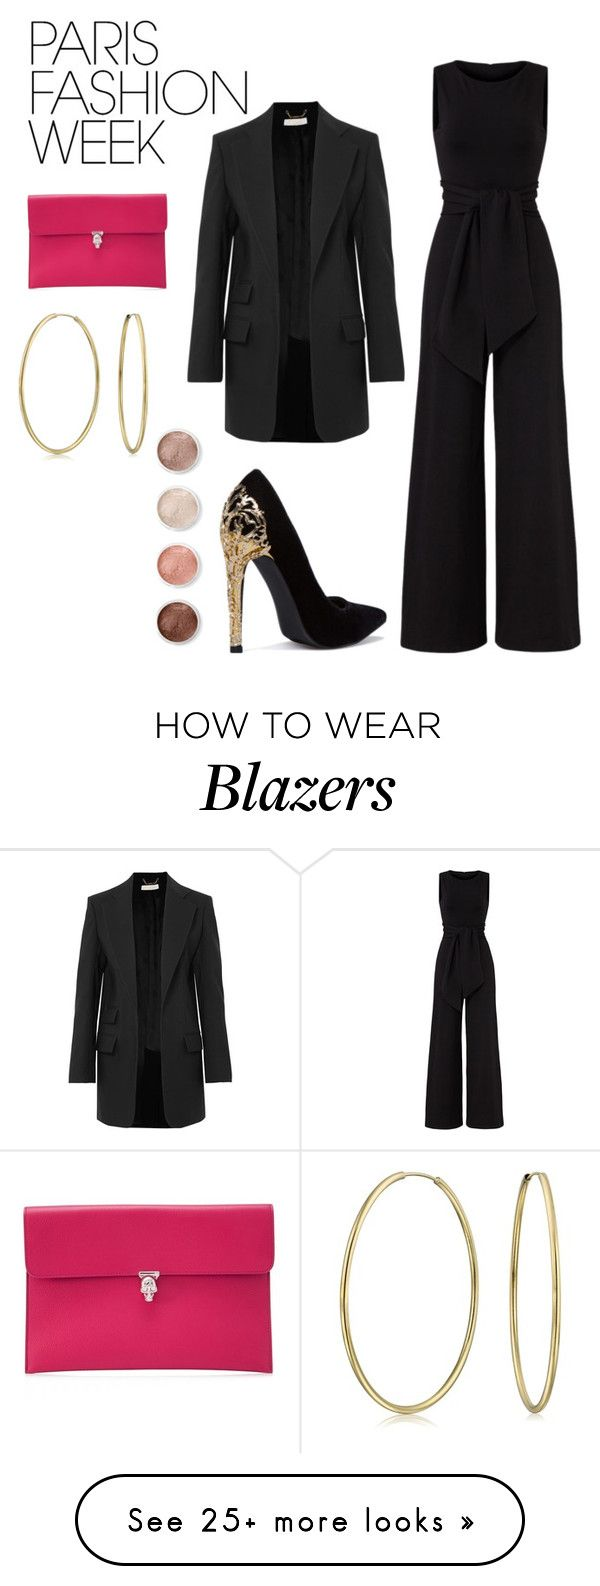 """Paris Fashion Week"" by beautyoctober on Polyvore featuring Bling Jewelry, Chloé, Alexander McQueen, Susana Monaco and Terre Mère"